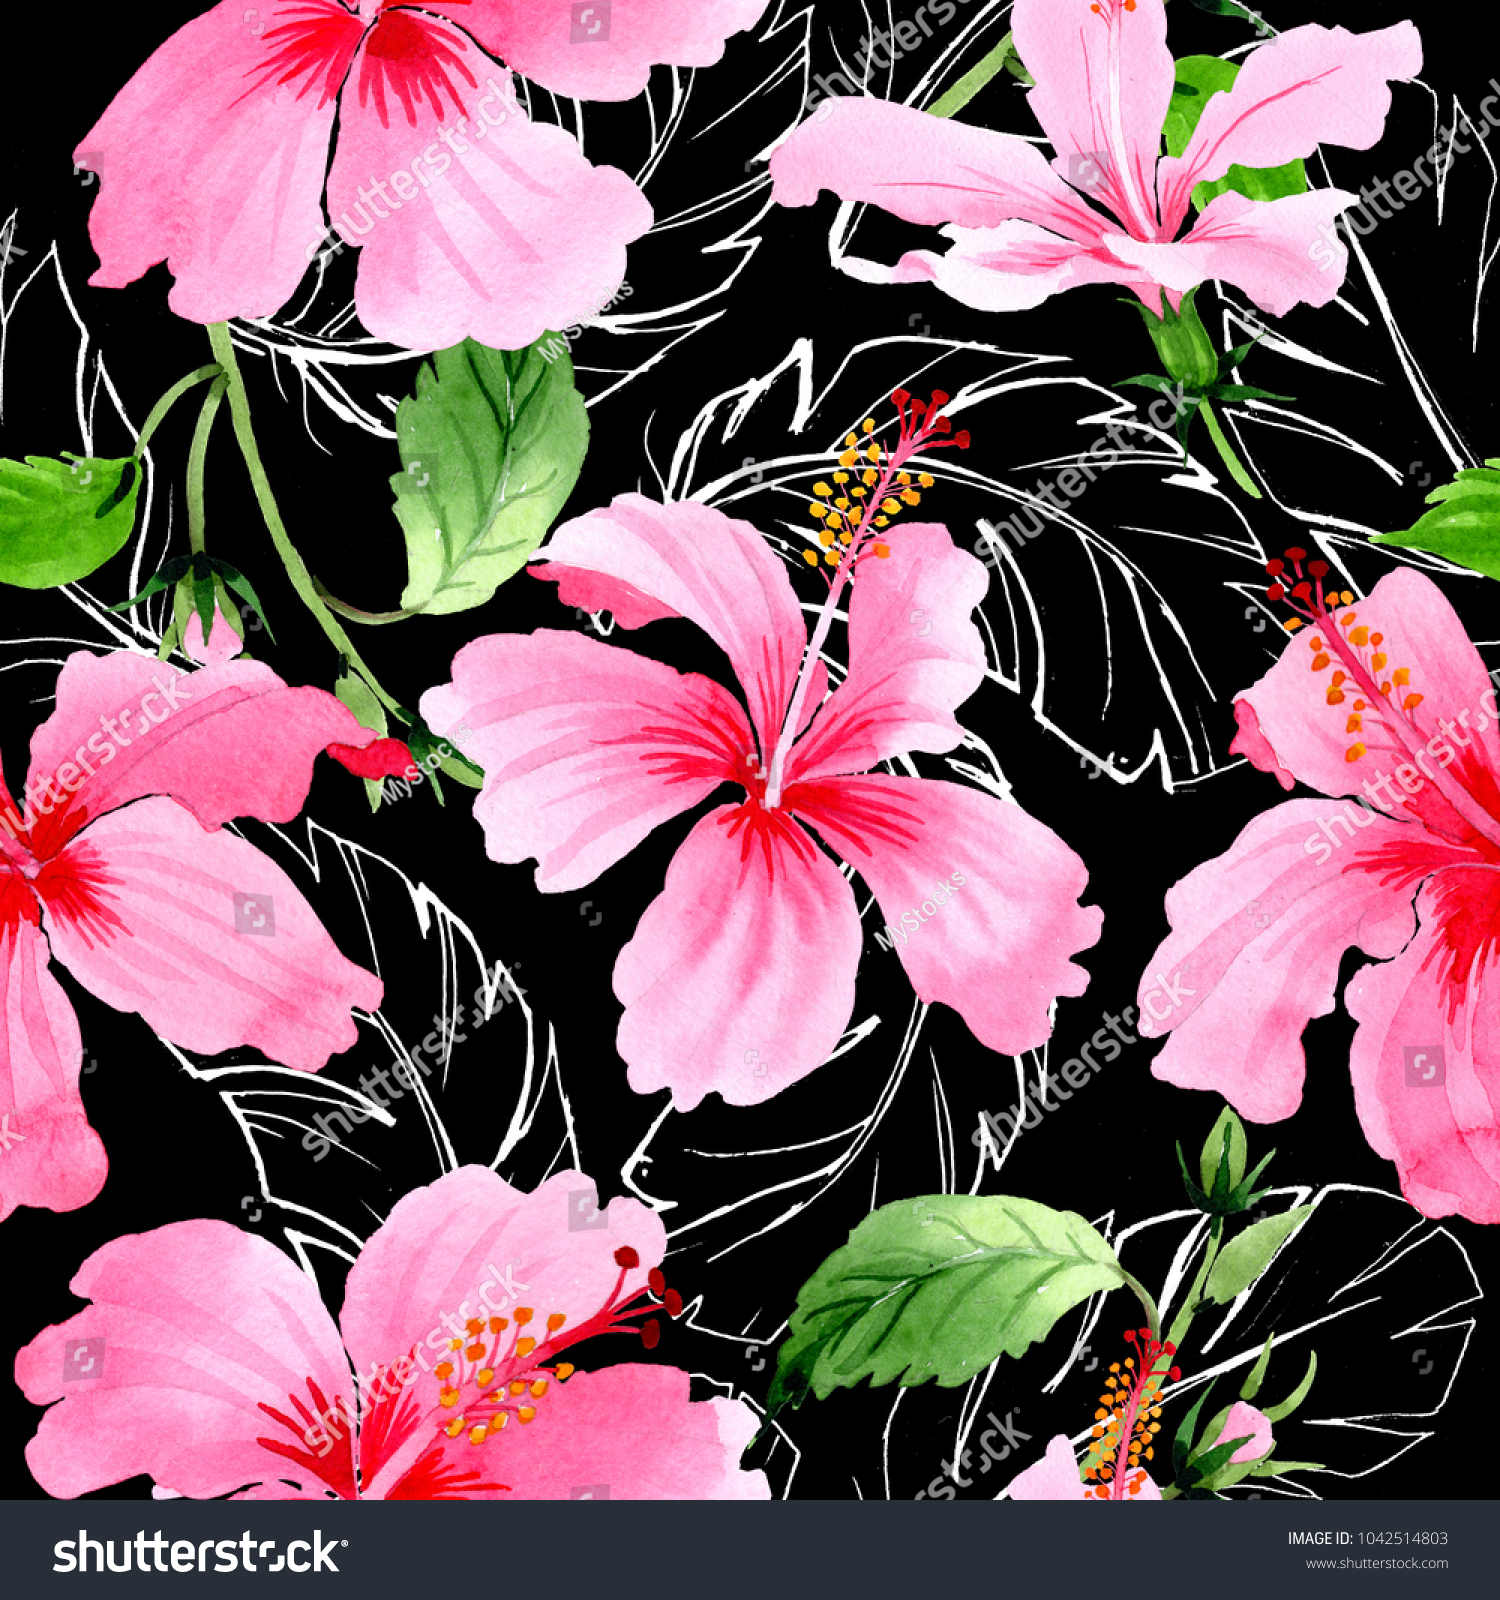 Wildflower hibiscus pink flower pattern in a watercolor style full id 1042514803 izmirmasajfo